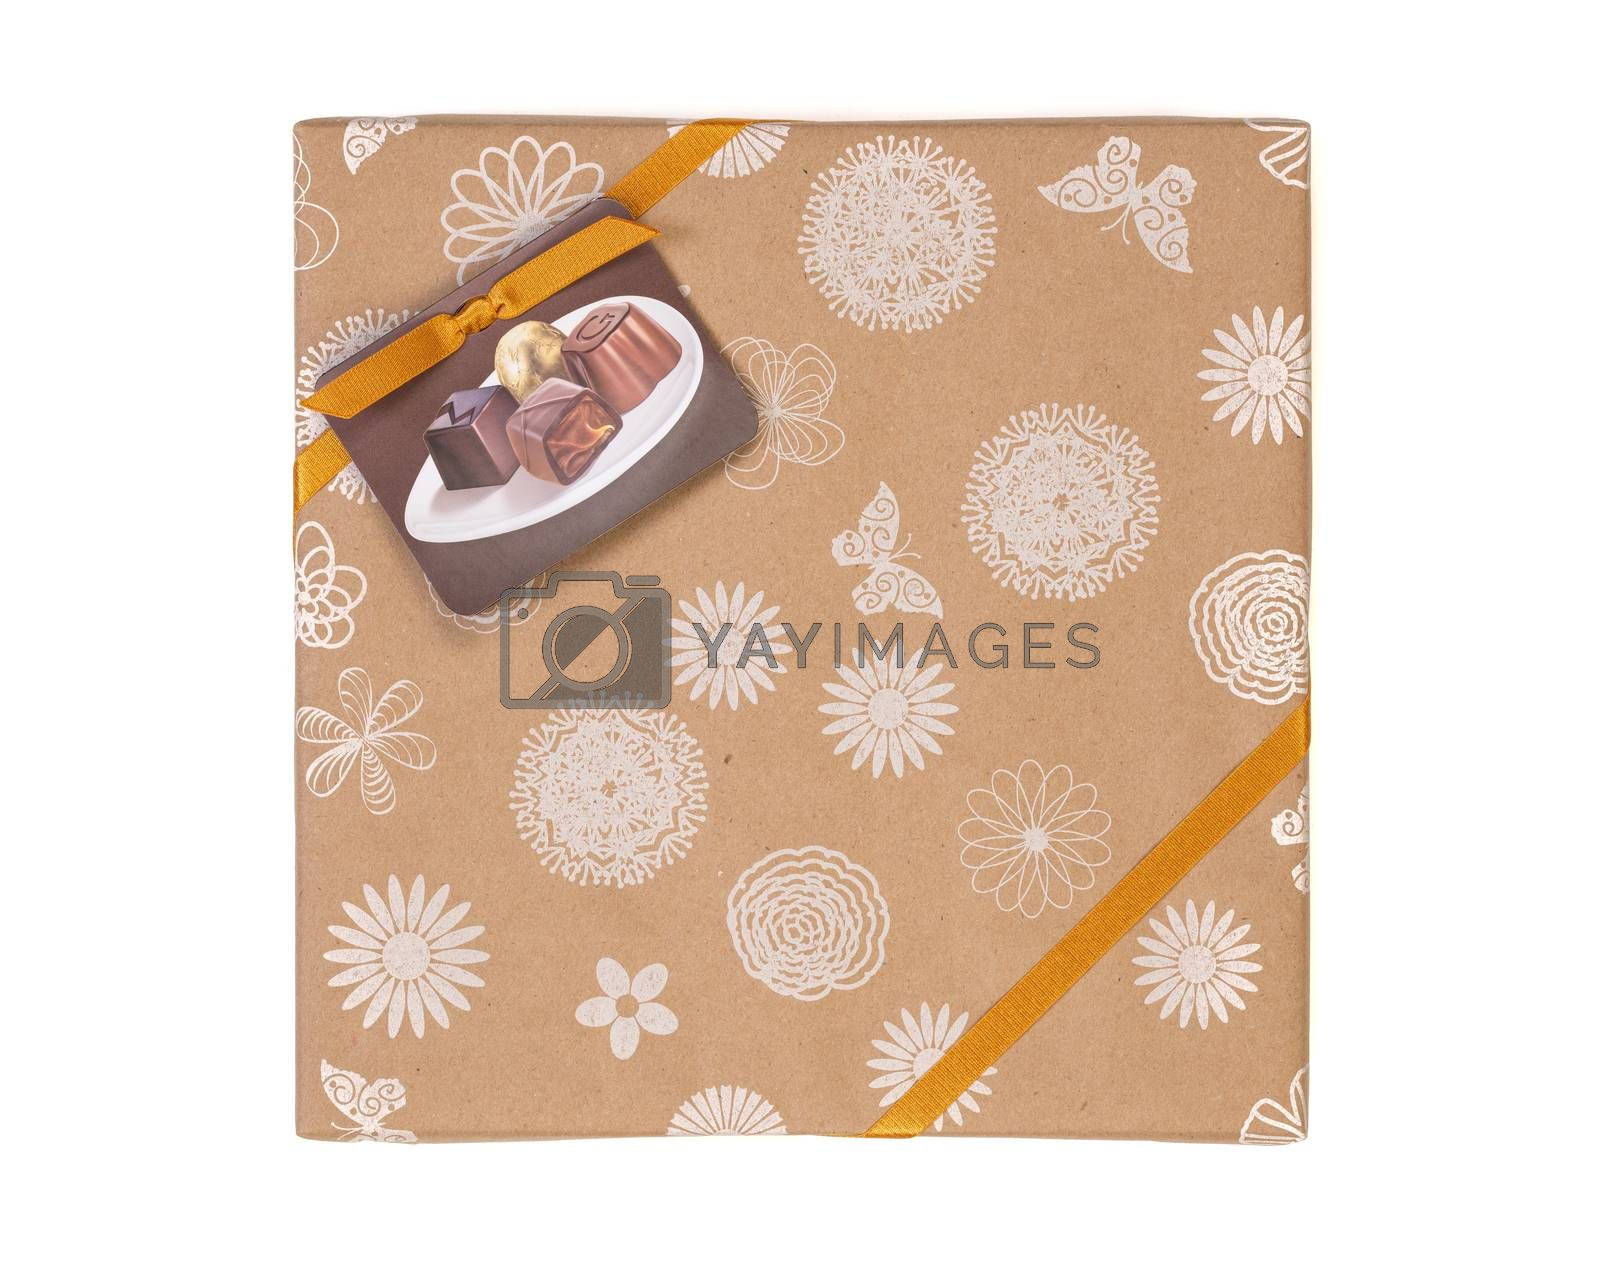 Gift wrapped box with chocolate candies and golden tape on a white background.